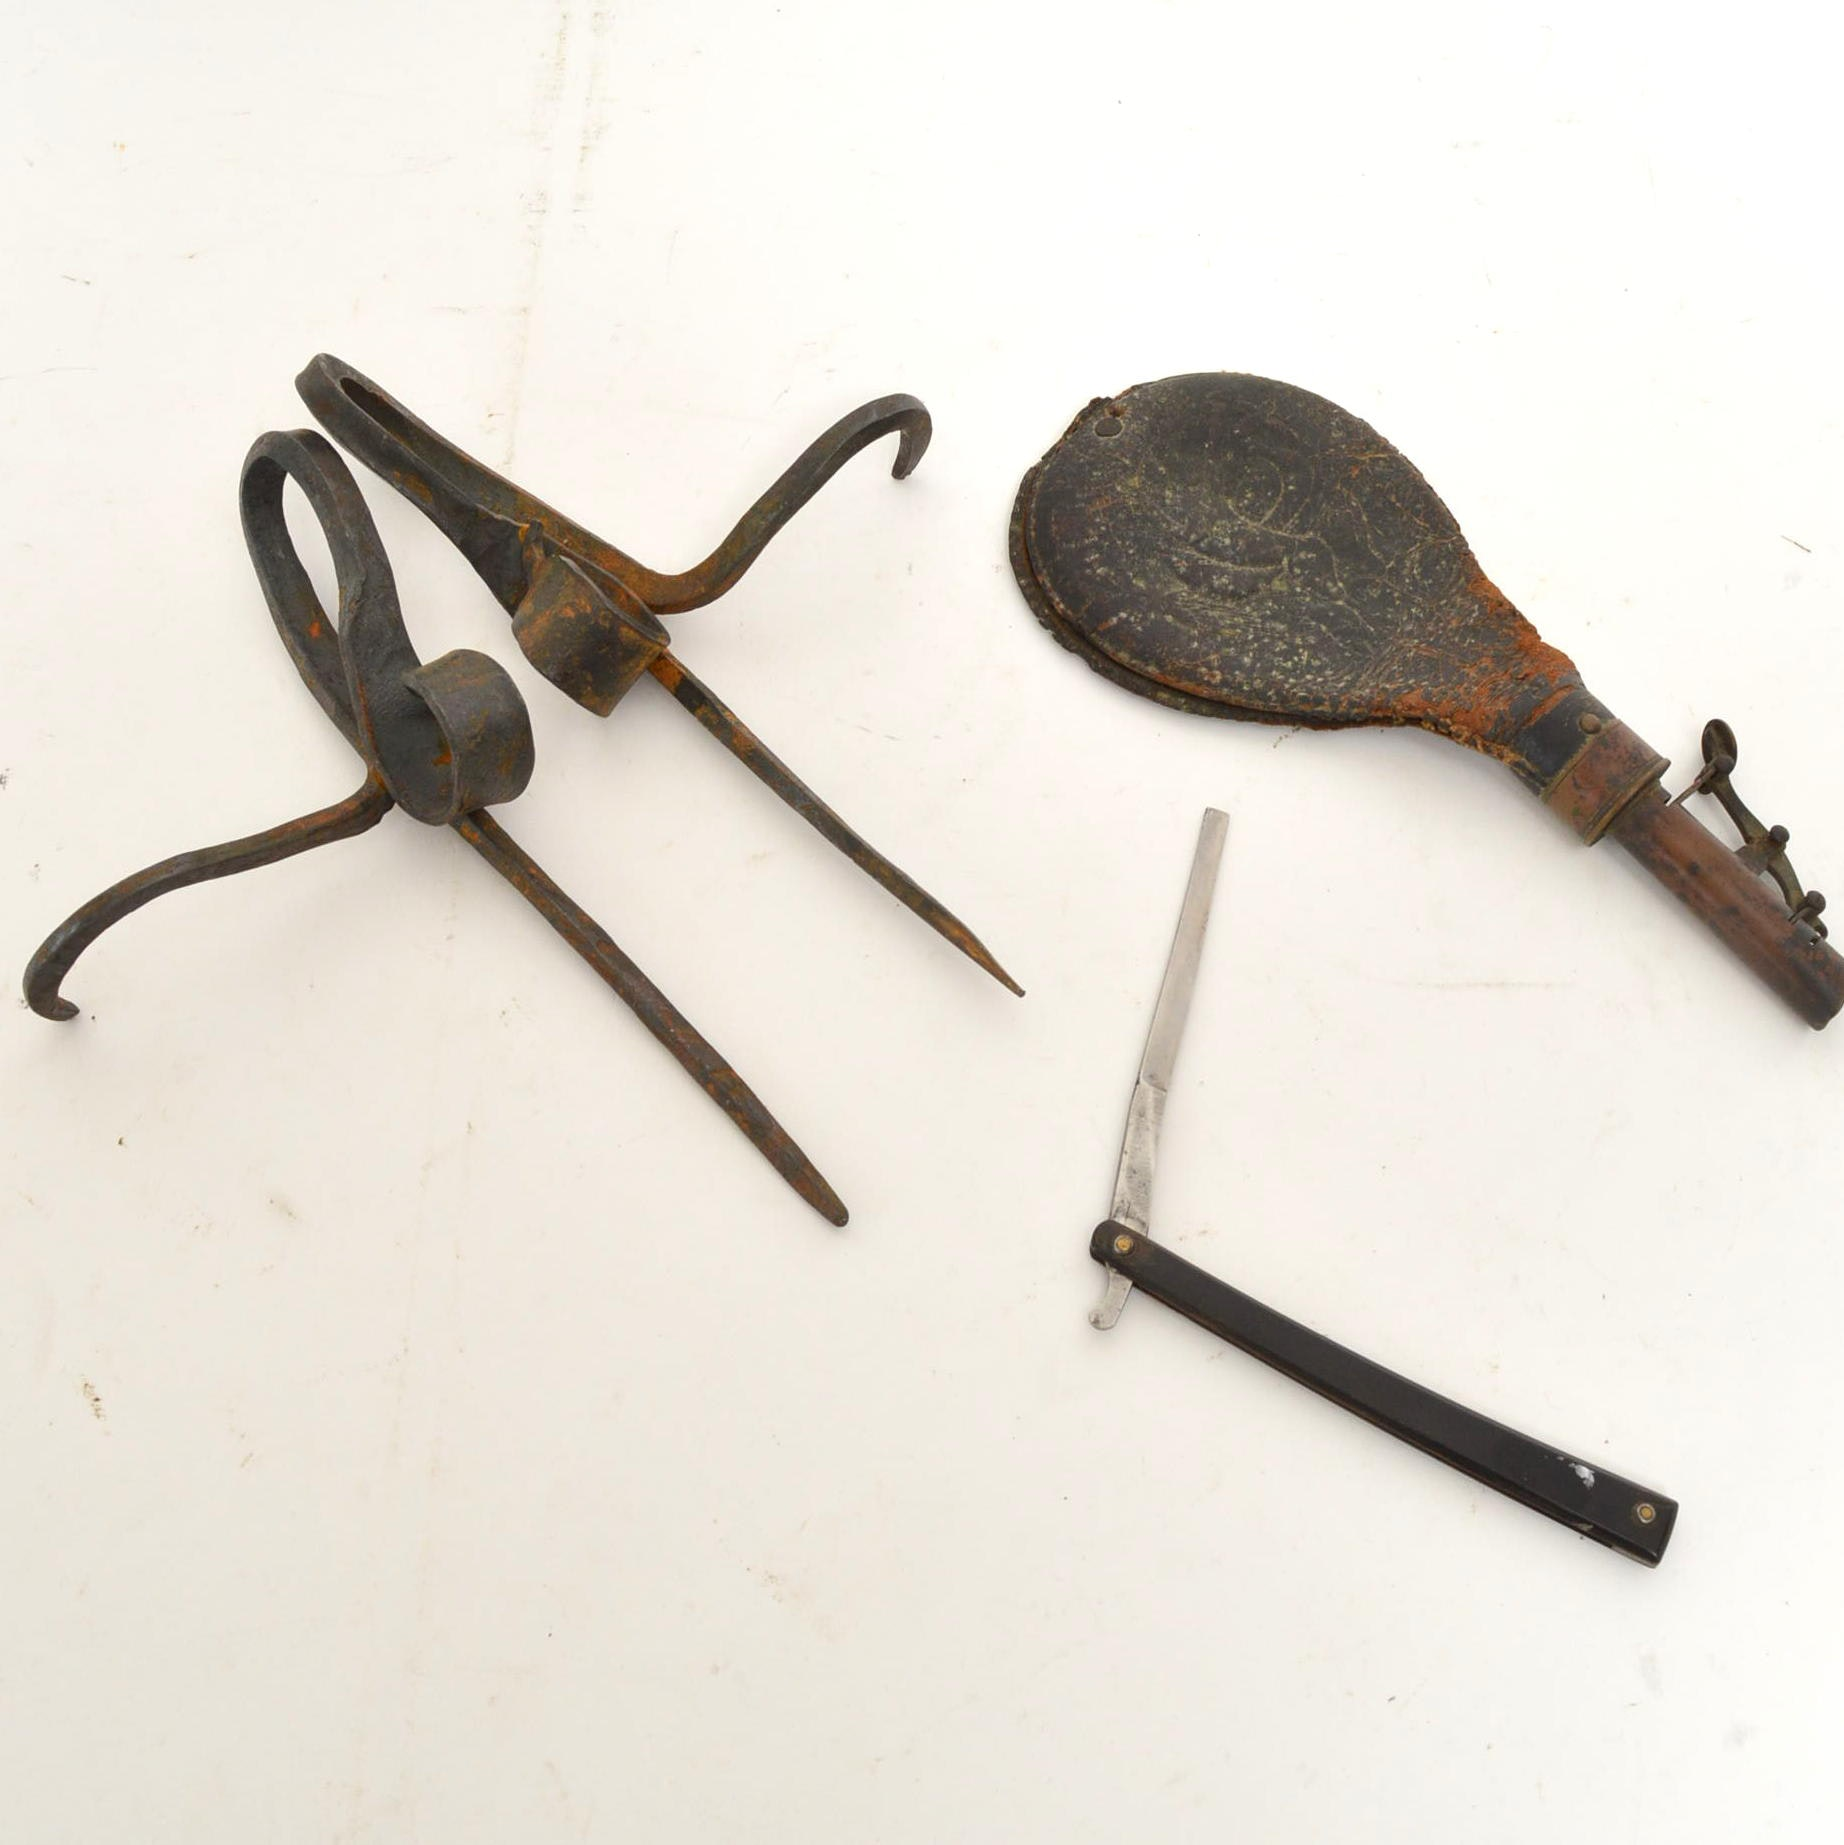 Miner's Candle Holders and Tools